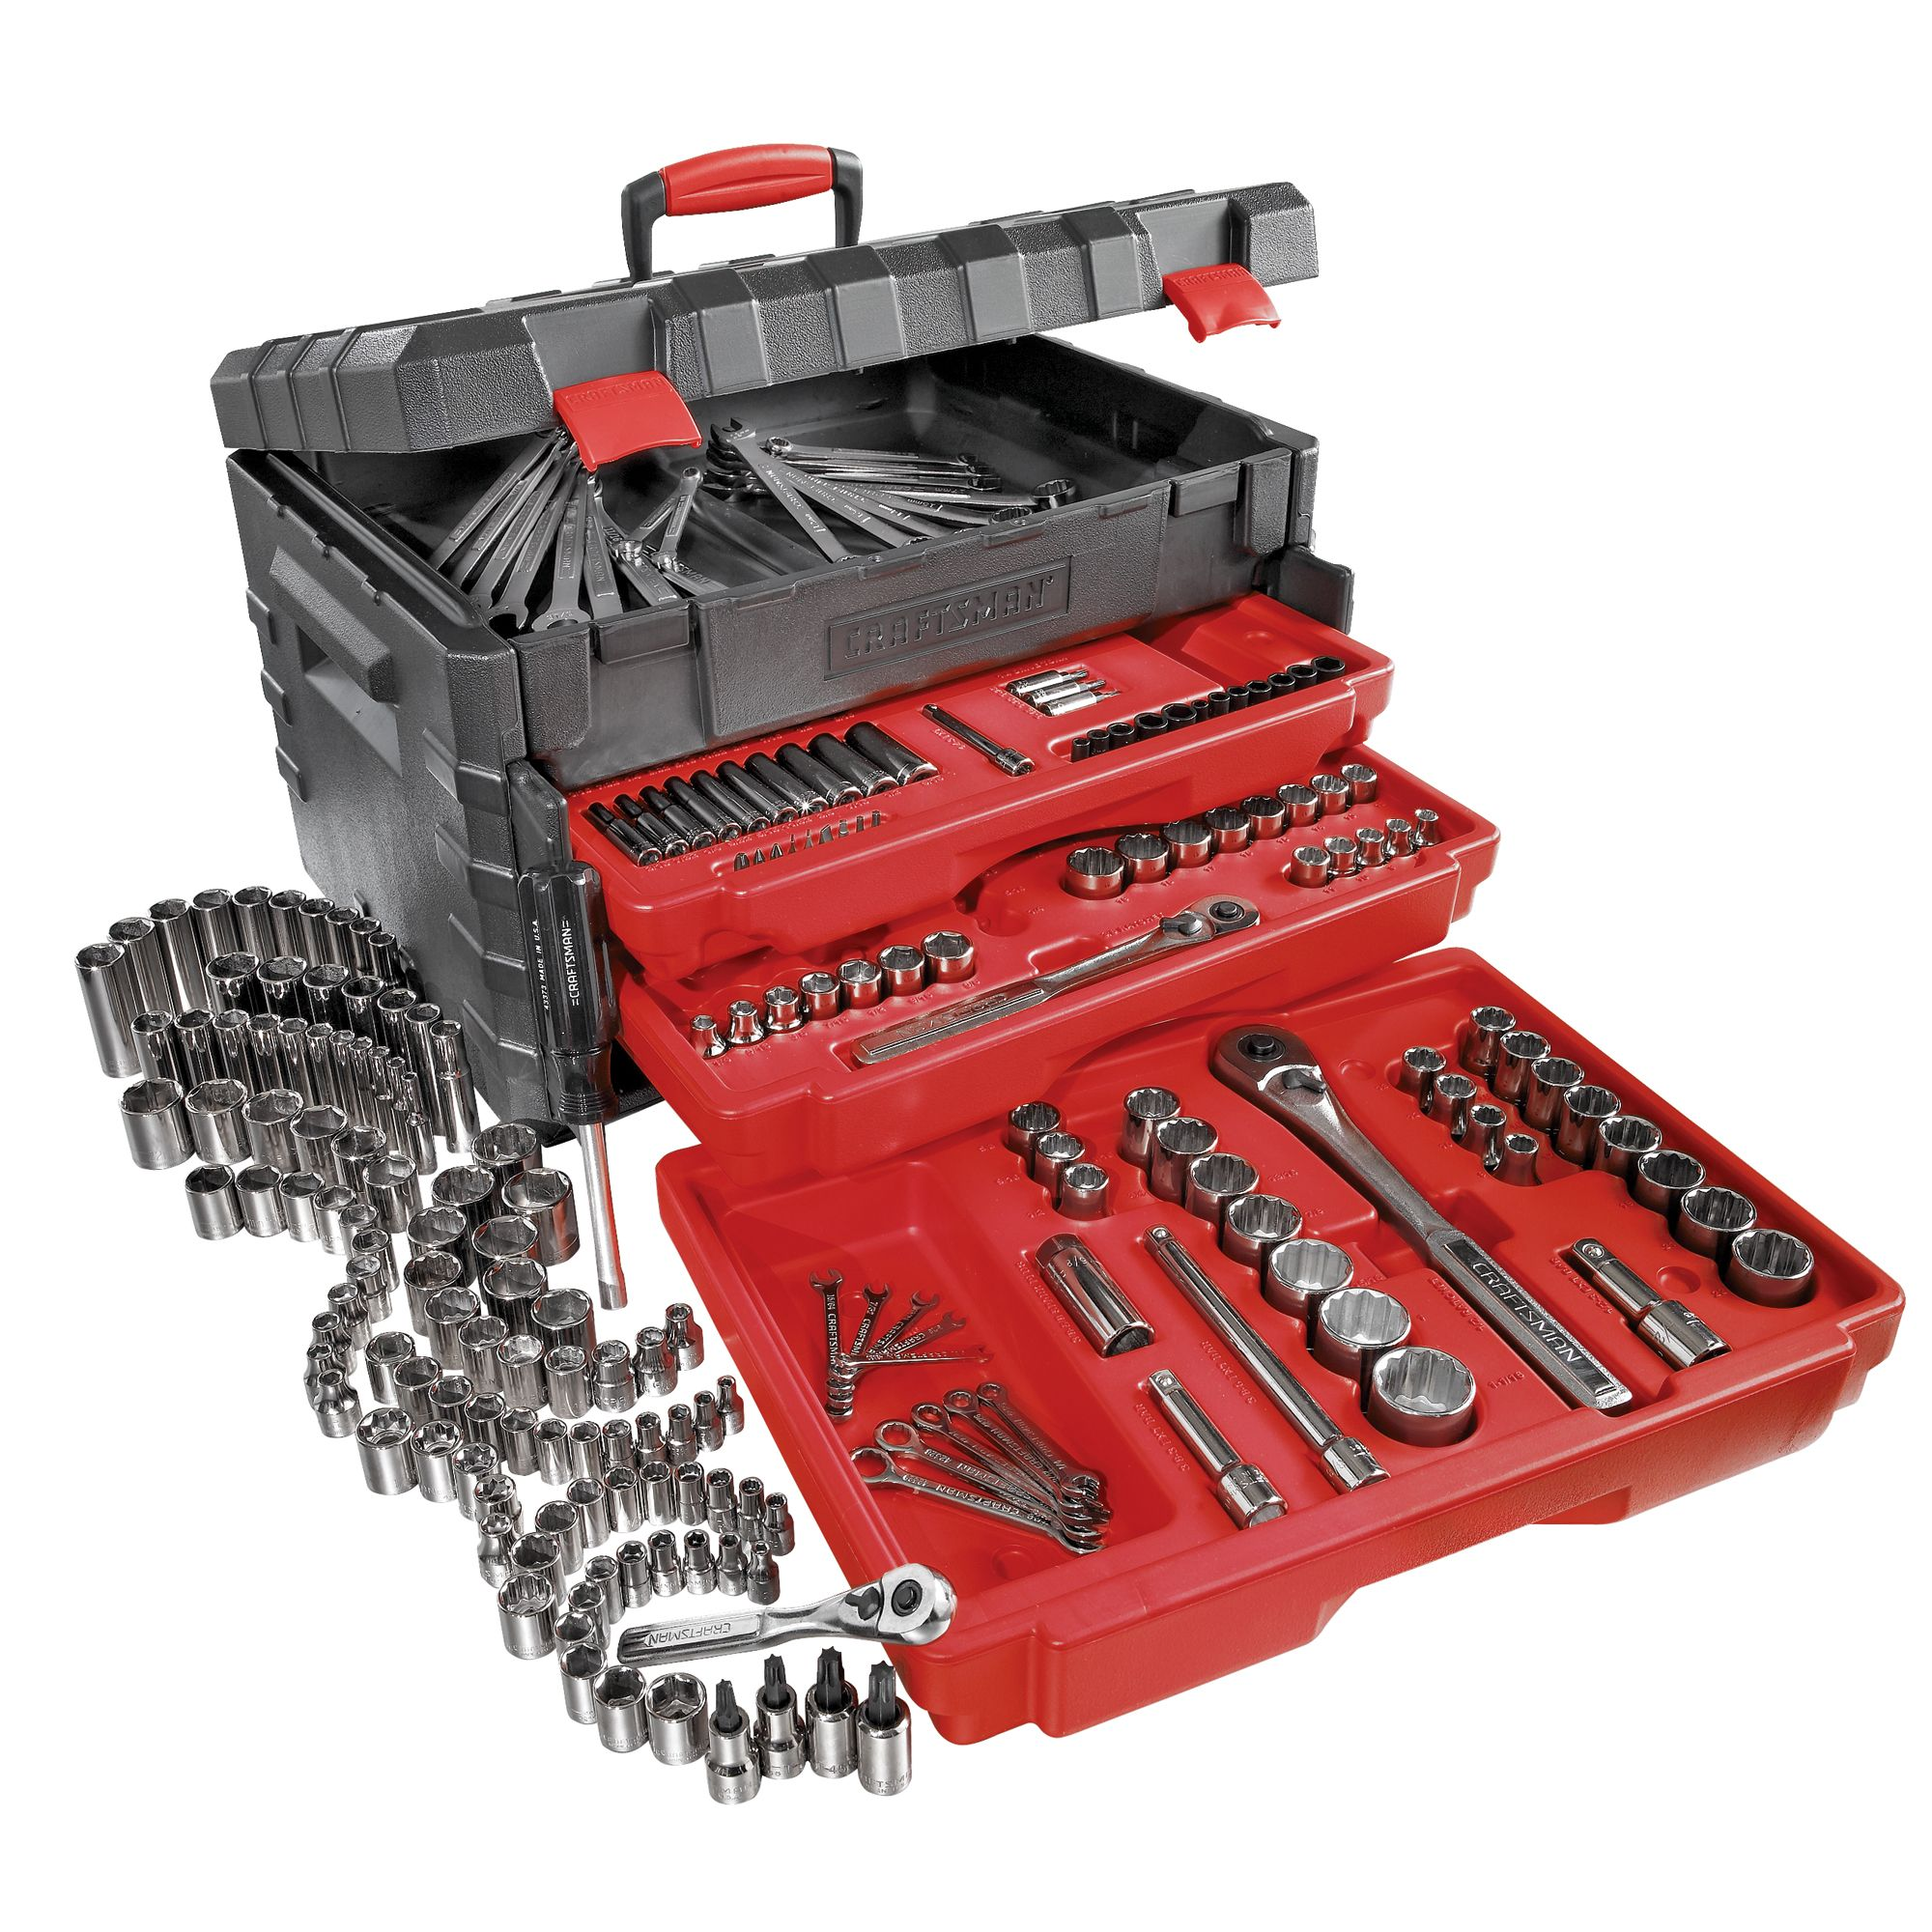 255 pc. Mechanics Tool Set with Lift Top Storage Chest                                                                           at mygofer.com